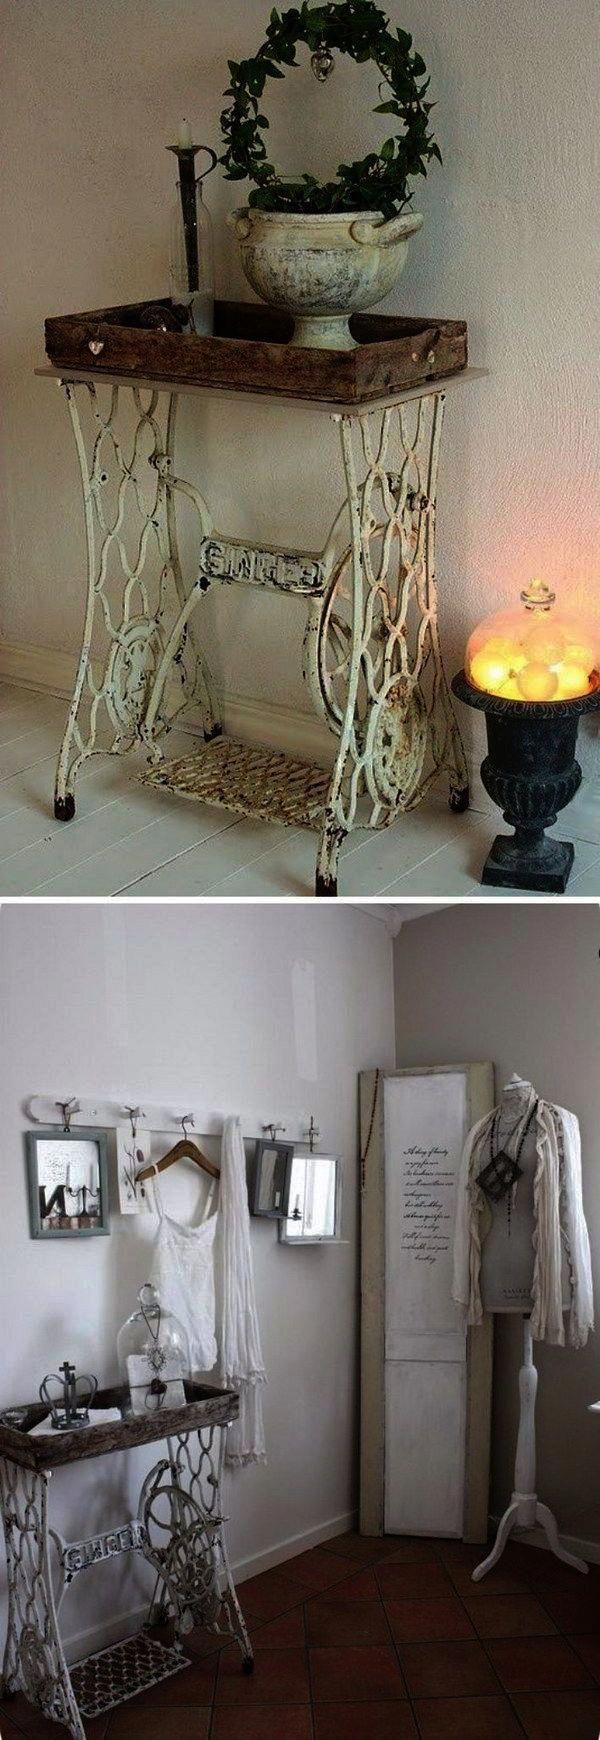 Home Decorating Ideas Kitchen Designs Paint Colors save Home Decor Kohls Vintage Furniture Legs to Shabby Chic Furniture Ipswich Shabby Chic Living Home Decorating Ideas...